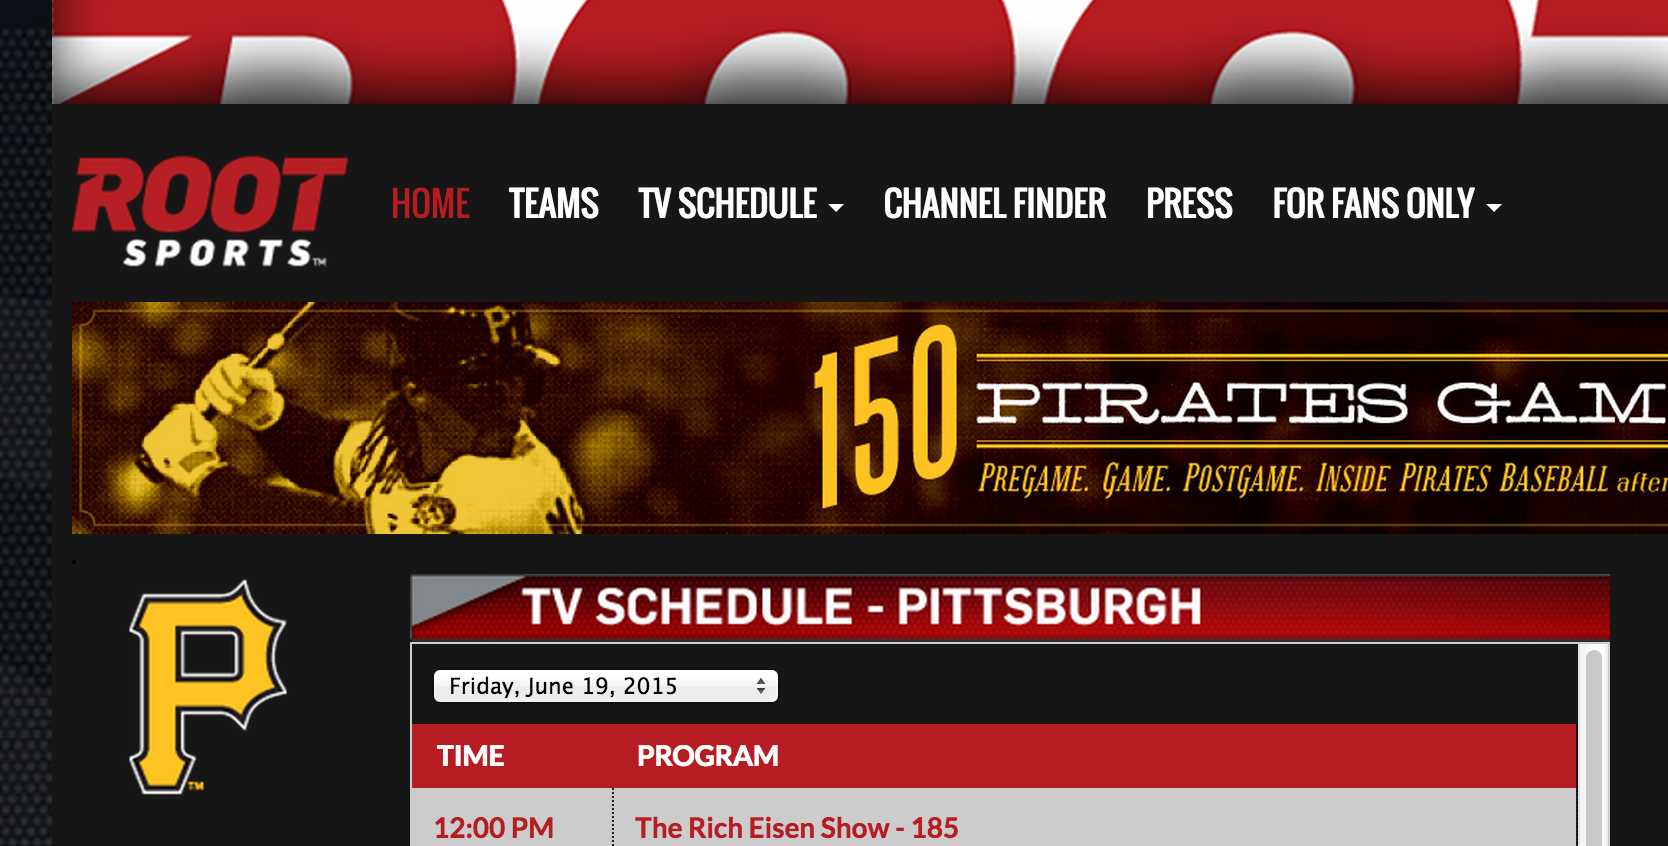 Root Sports Pittsburgh is one of several regional sports networks owned by DirecTV.